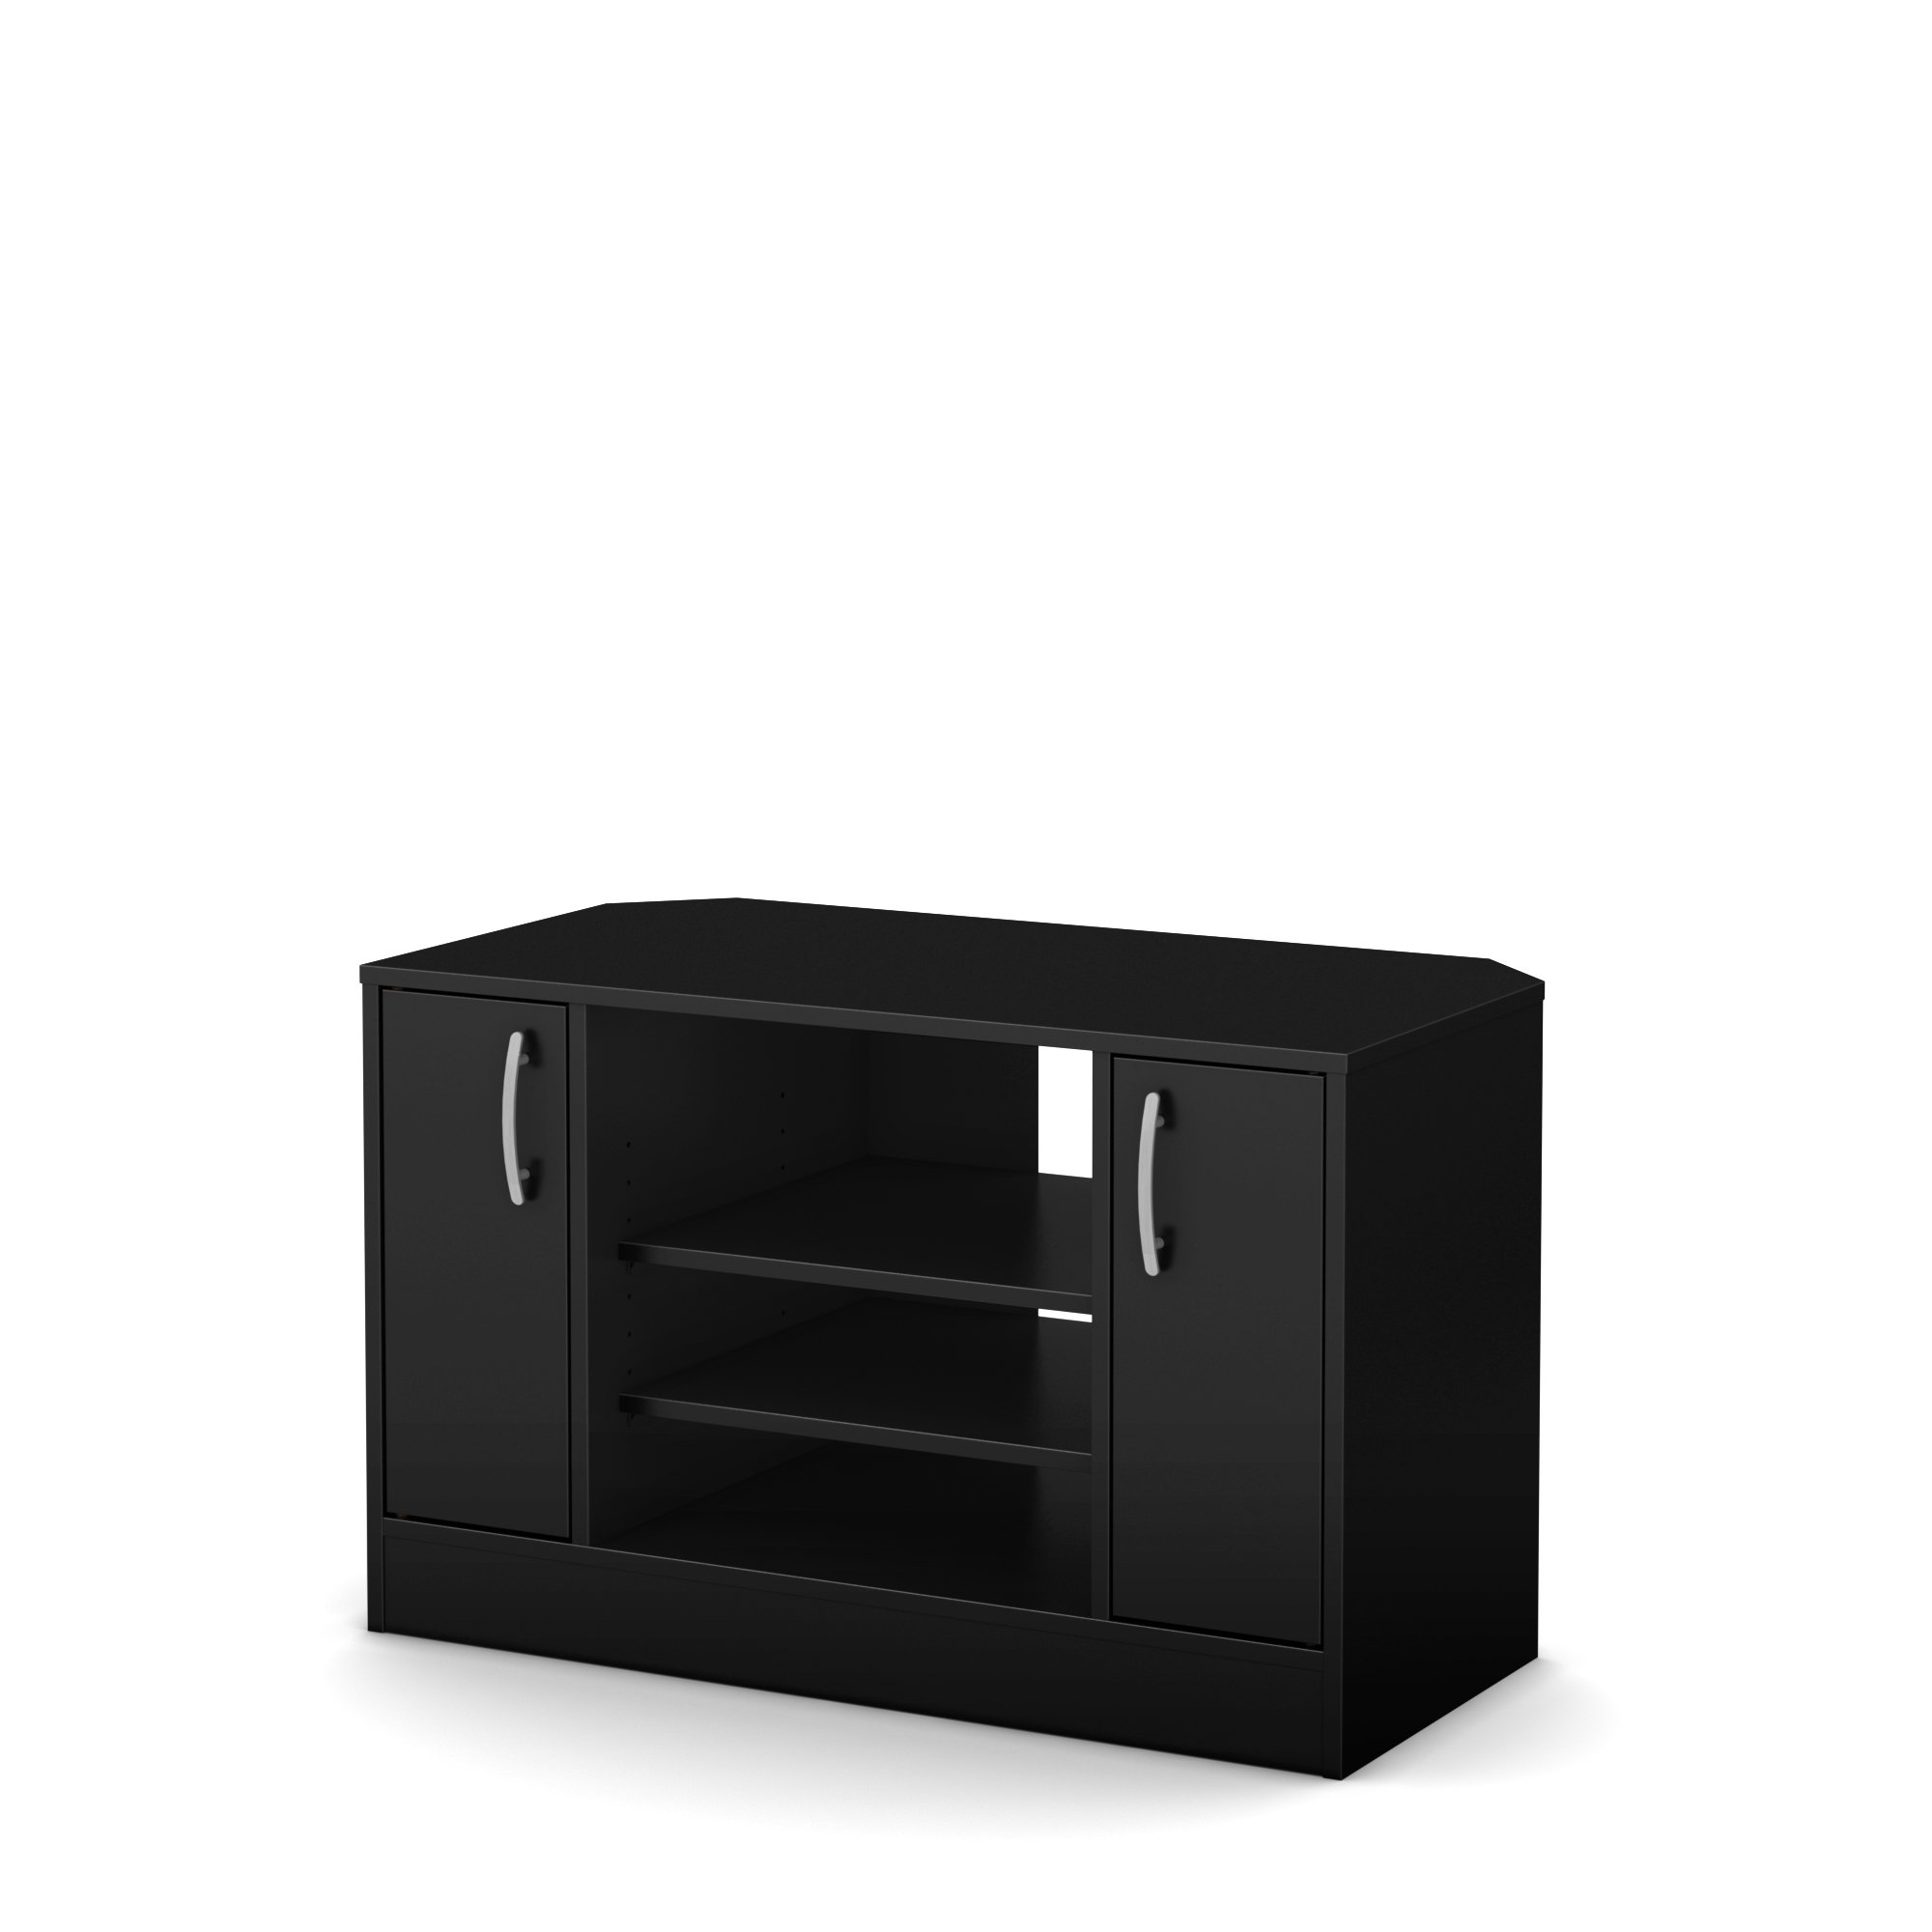 Axess Corner TV Stand - Fits TVs Up to 42'' Wide - Pure Black - by South Shore